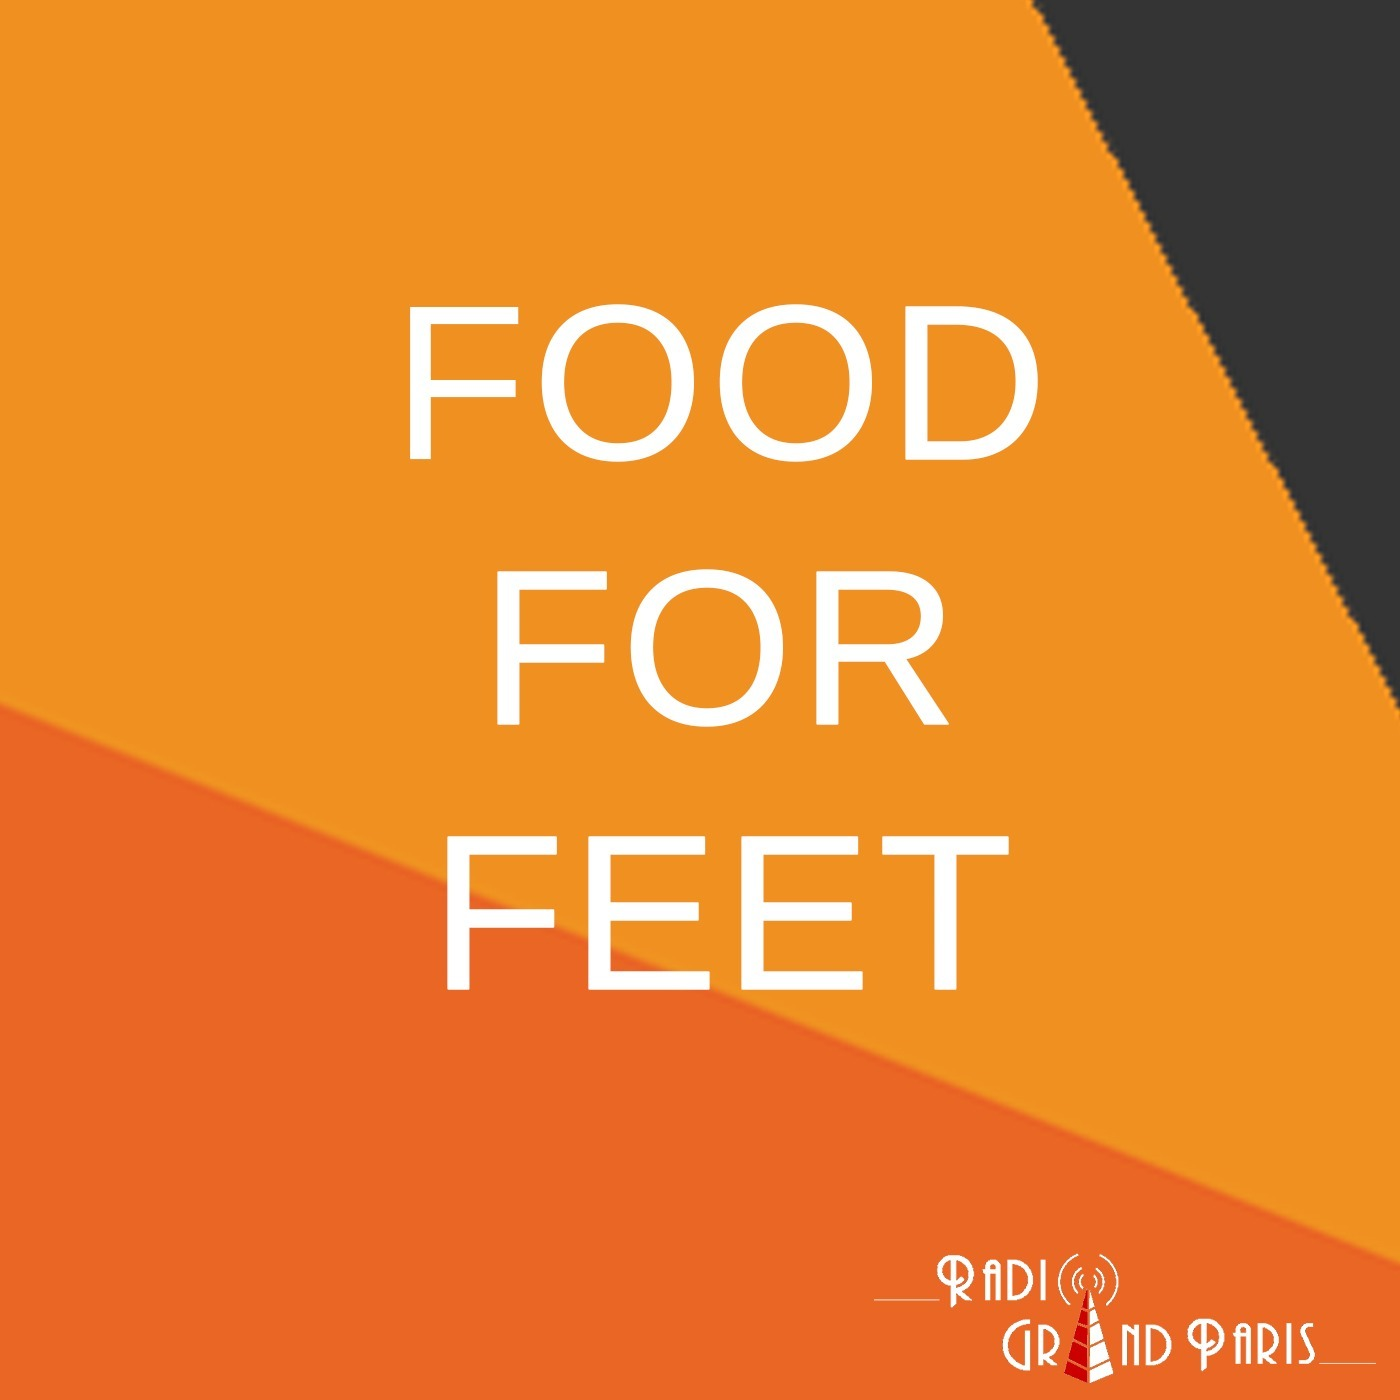 Food For Feet 05042019